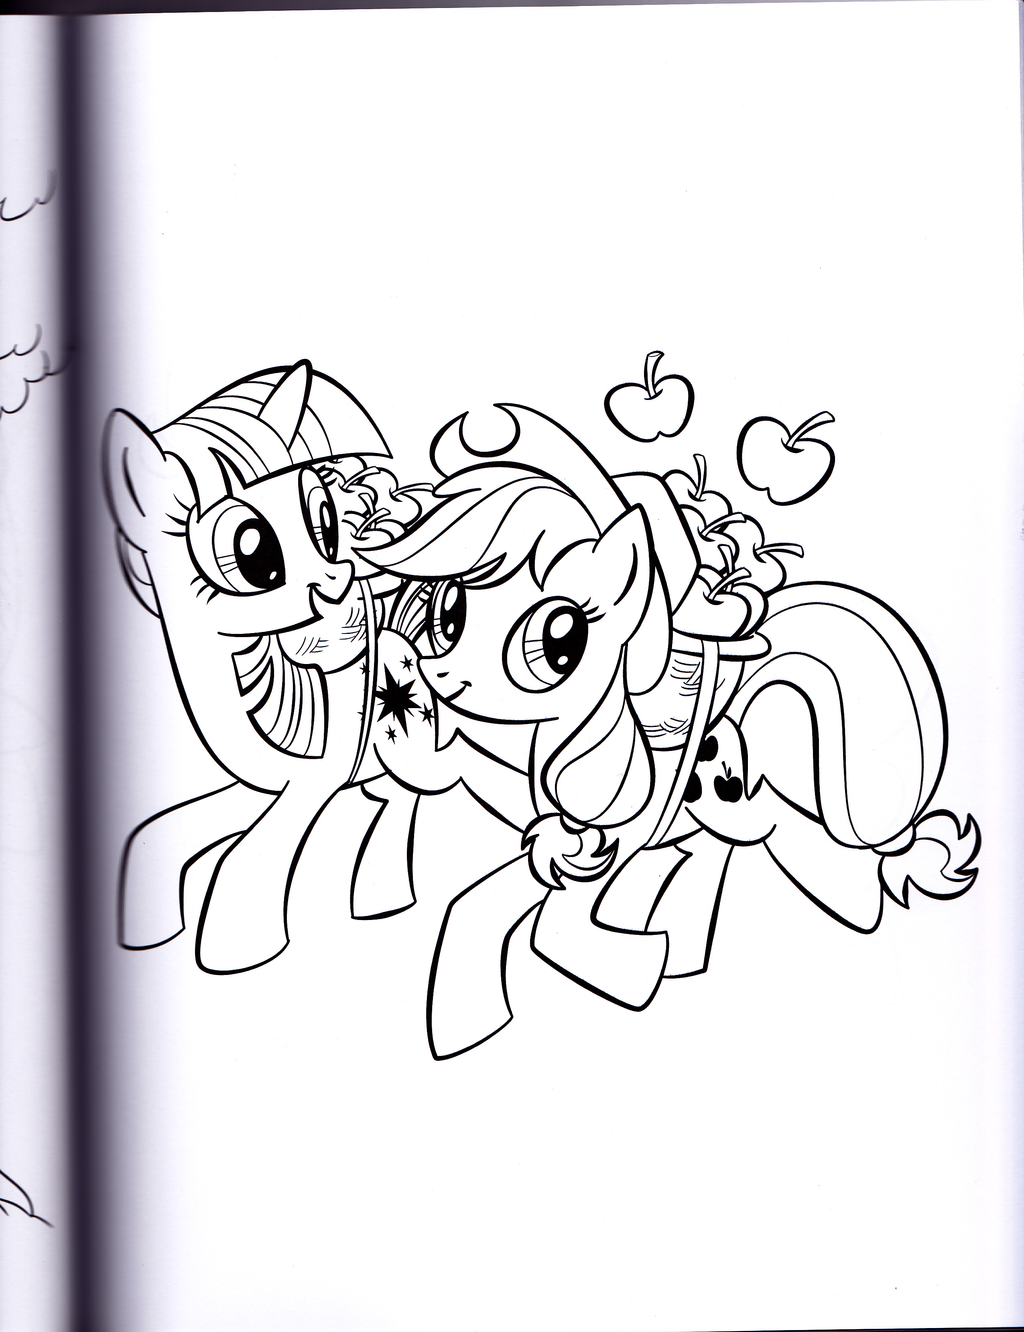 twilight the movie coloring pages - photo#31